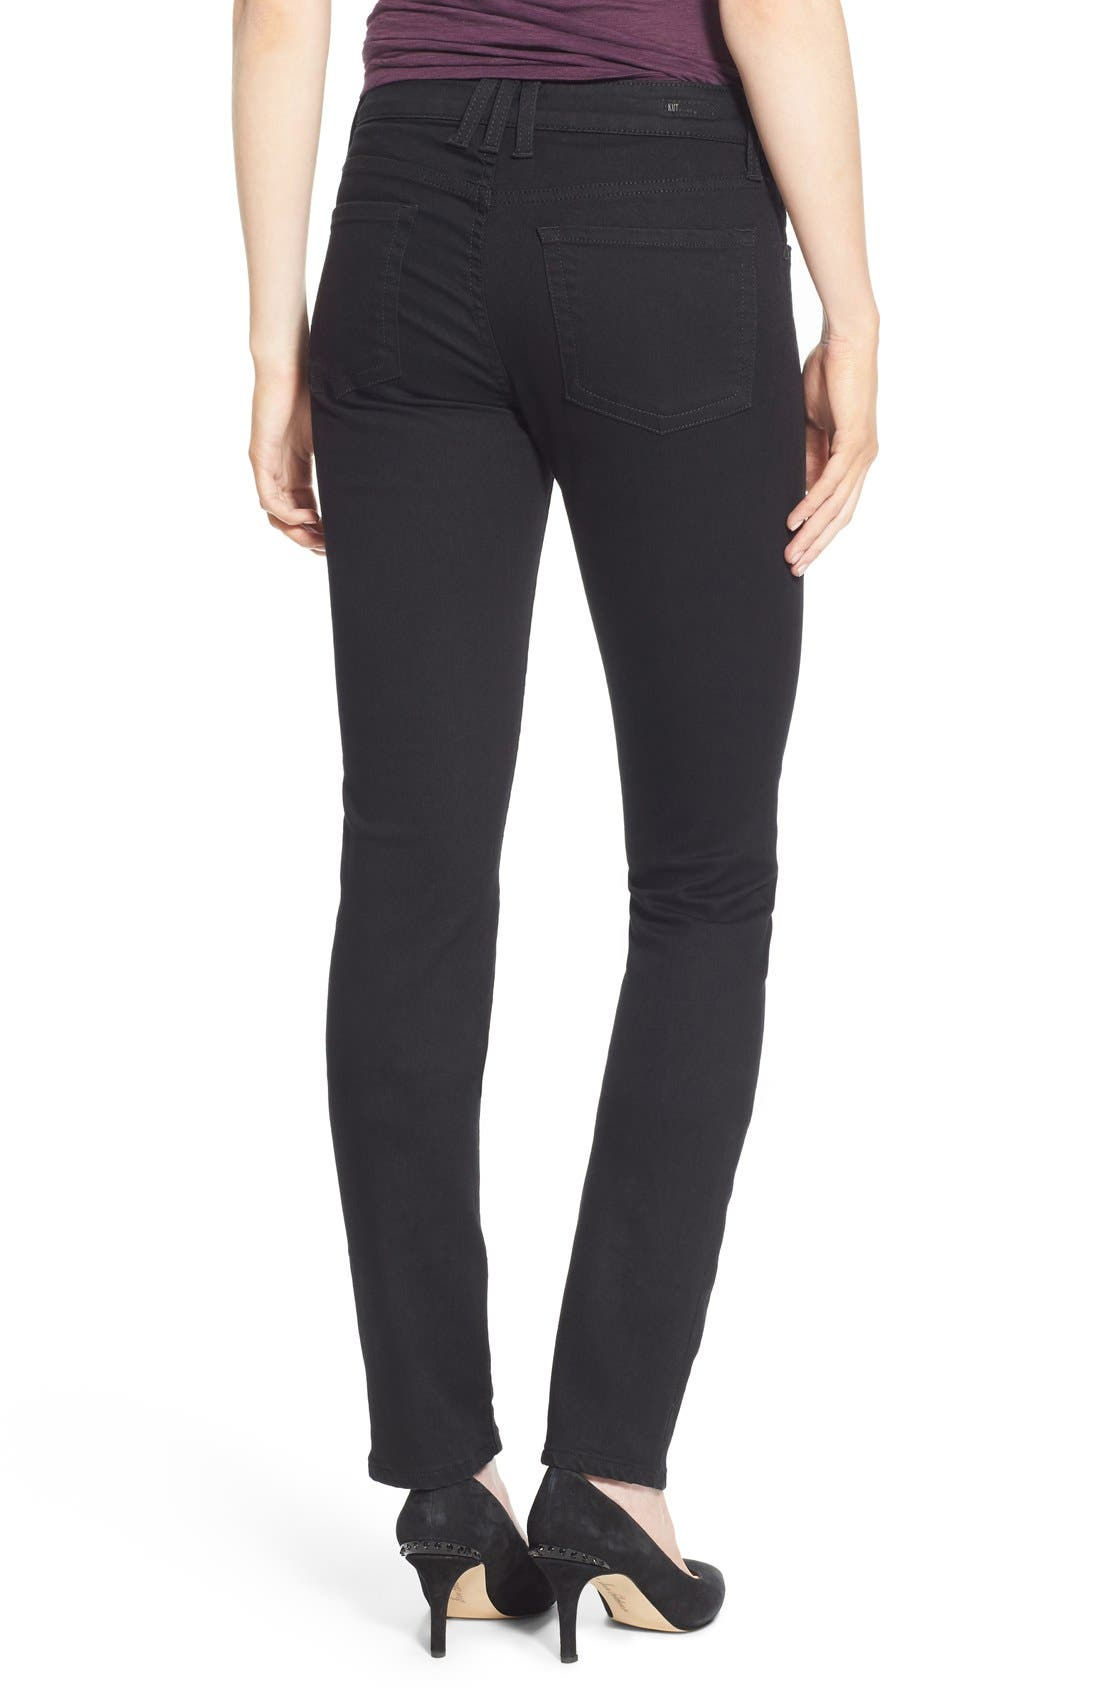 Alternate Image 3  - KUT from the Kloth 'Diana' Stretch Skinny Jeans (Regular & Petite)